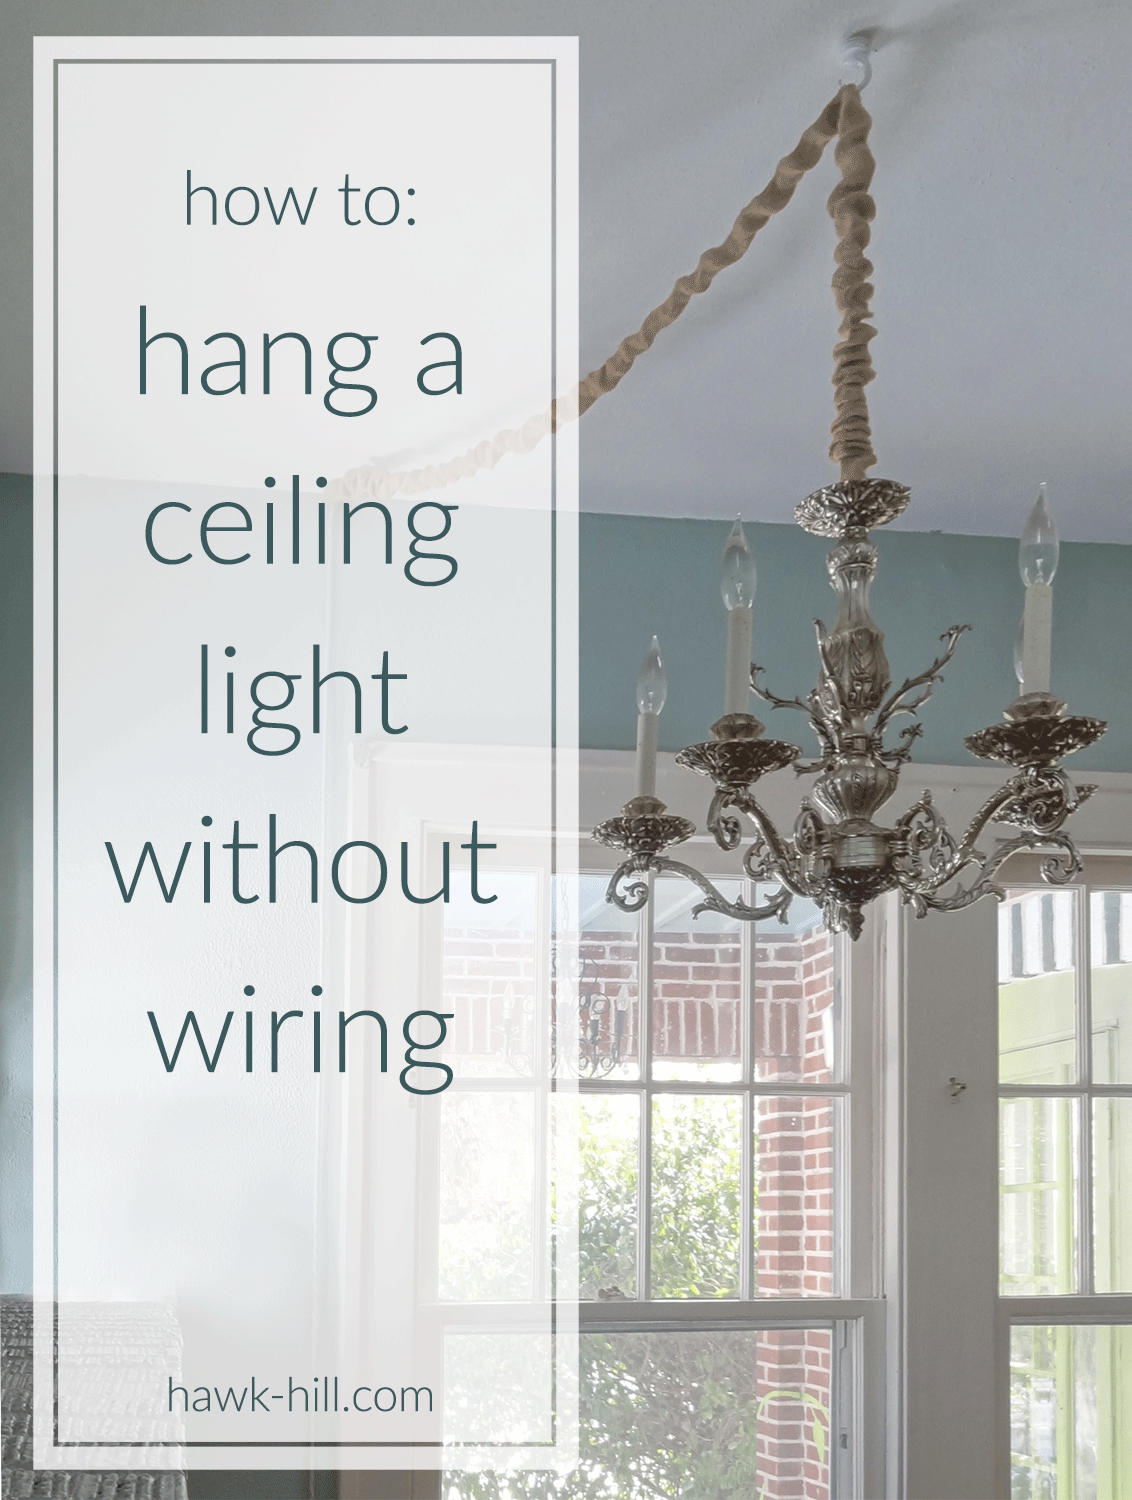 Instructions For Hanging A Ceiling Light Without Wiring Installation